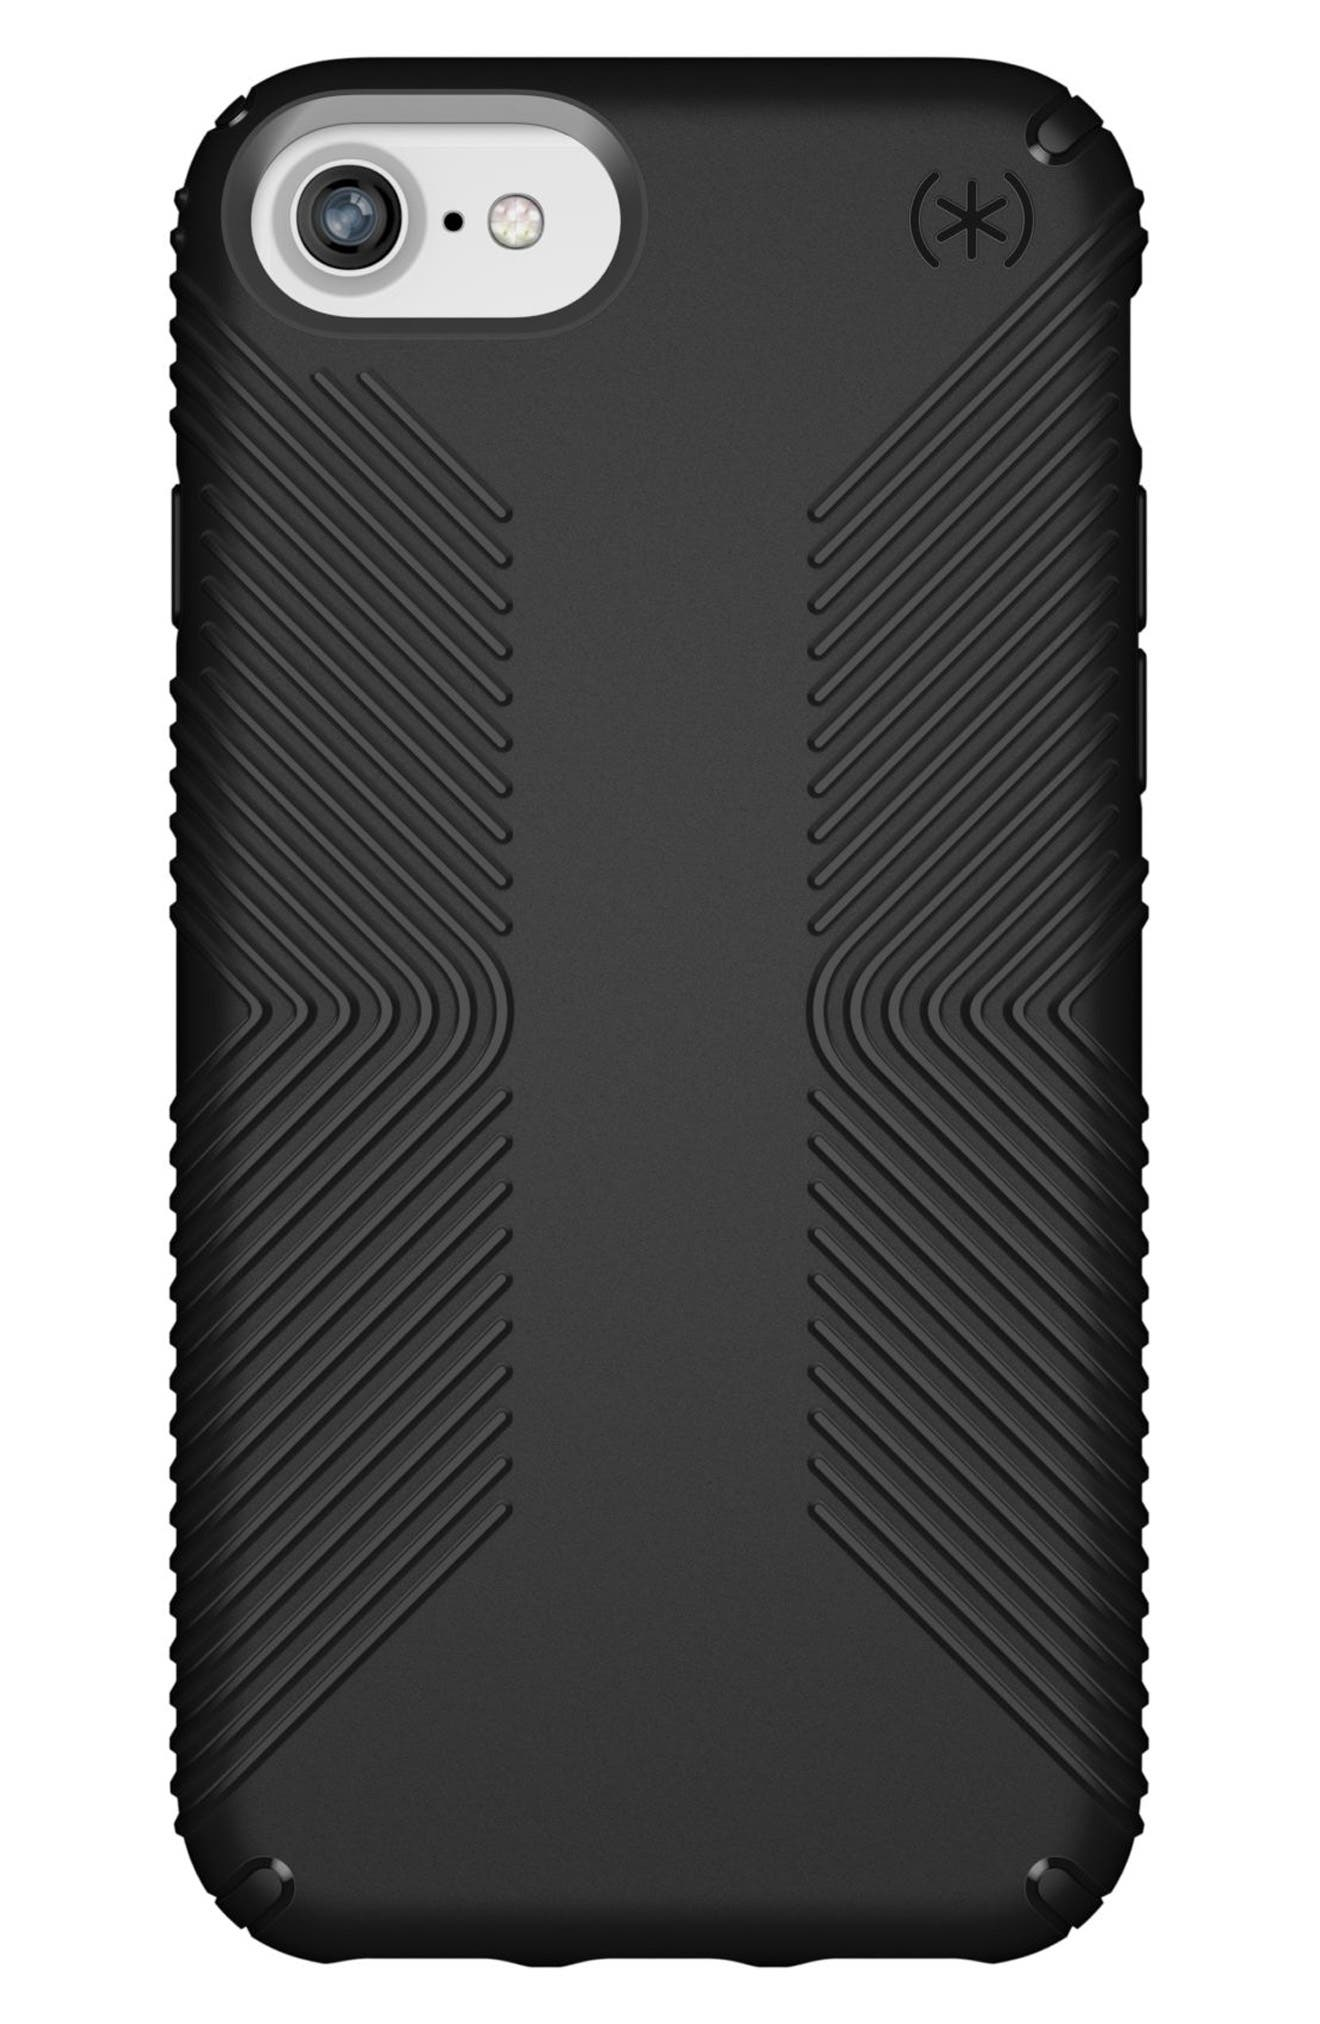 Grip iPhone 6/6s/7/8 Case,                             Main thumbnail 1, color,                             Black/ Black